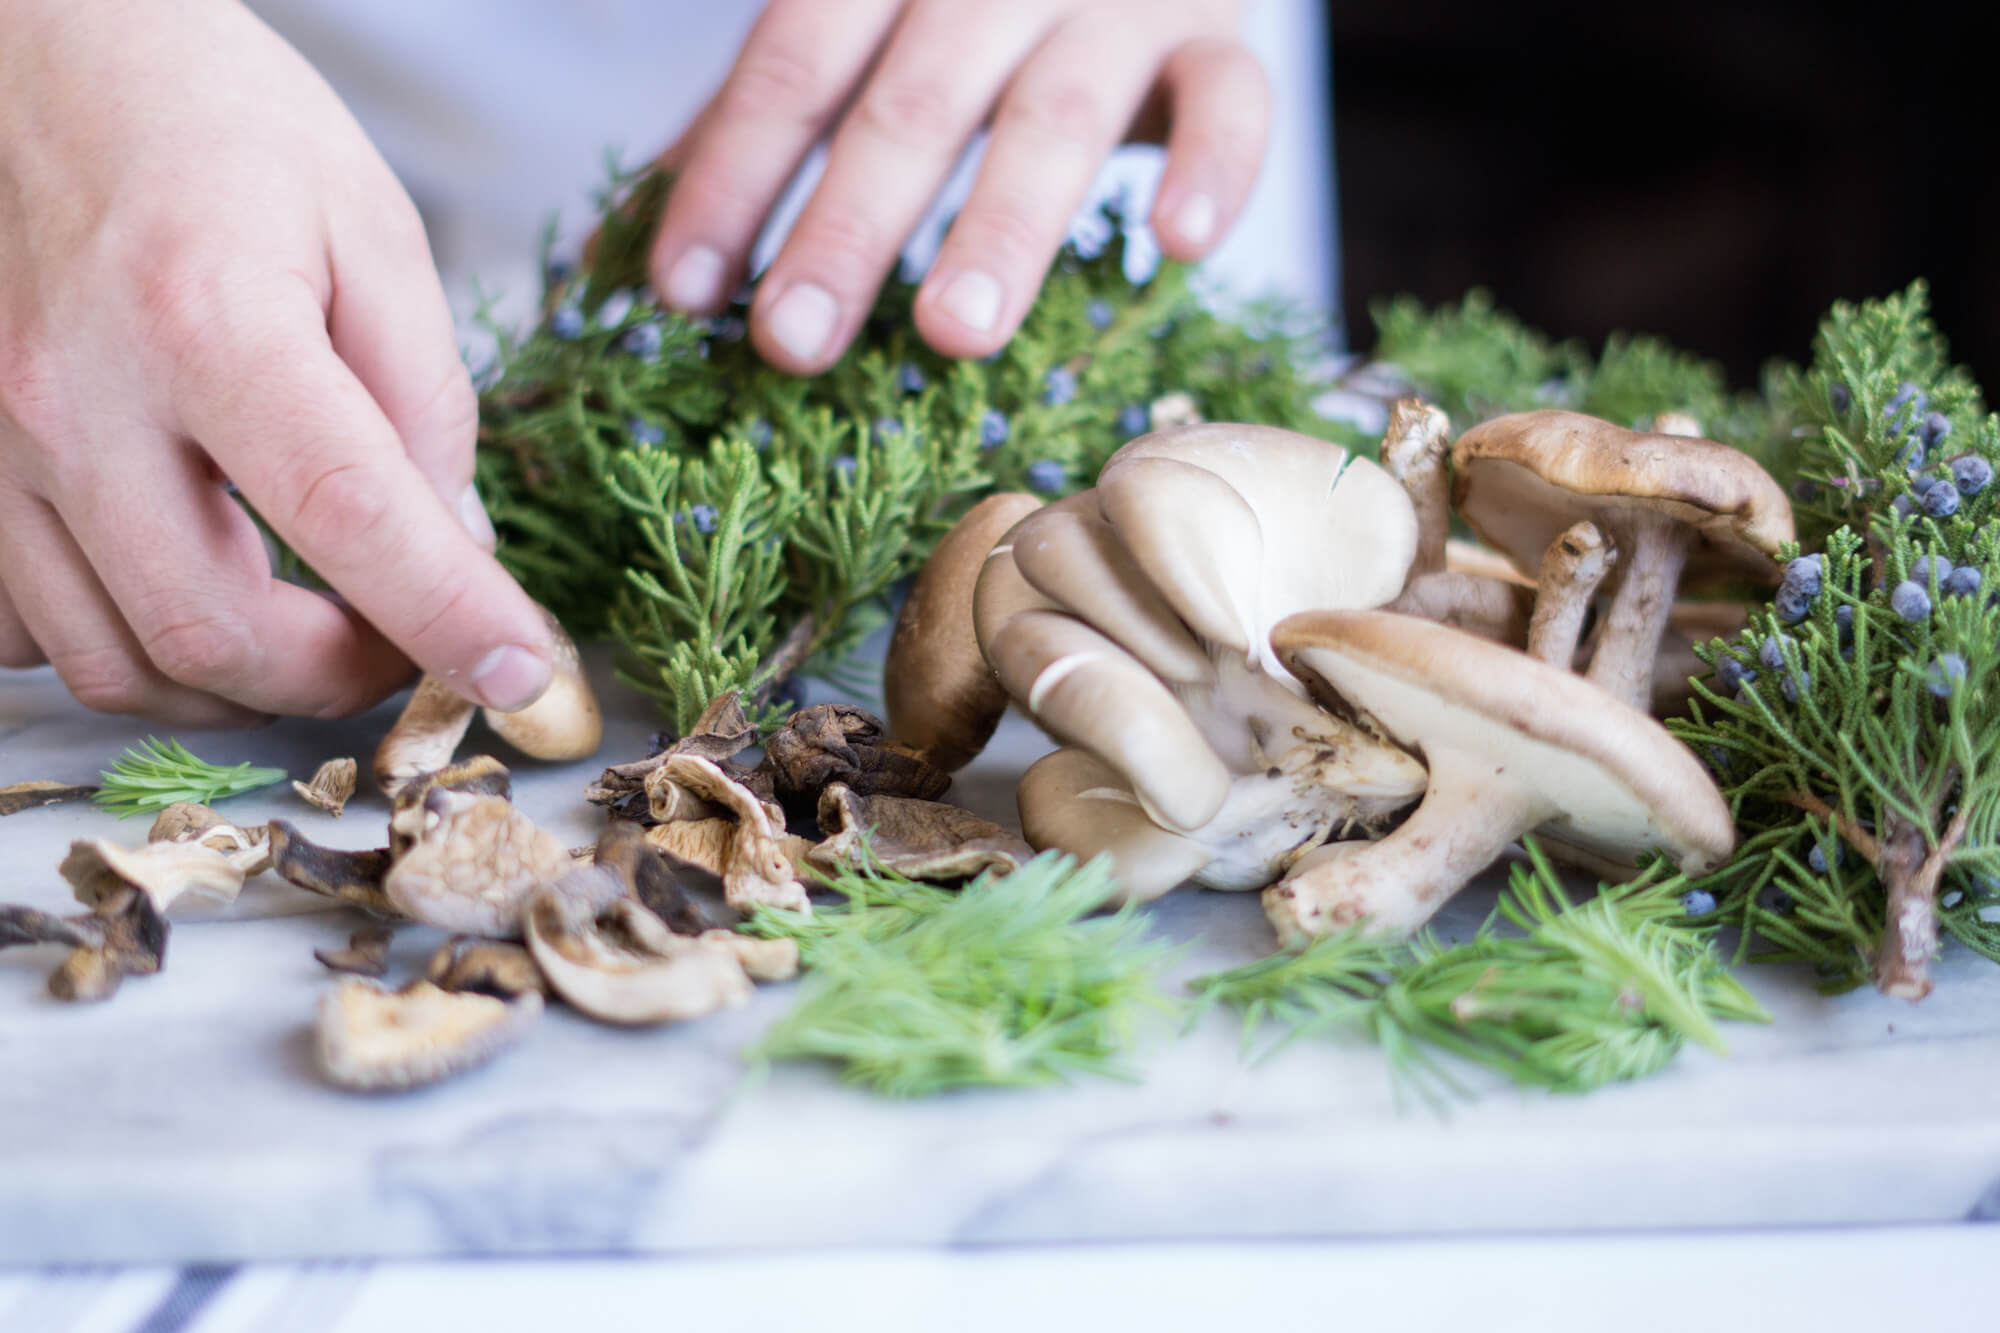 In most of the Nordic region, mushrooms weren't eaten for many generations